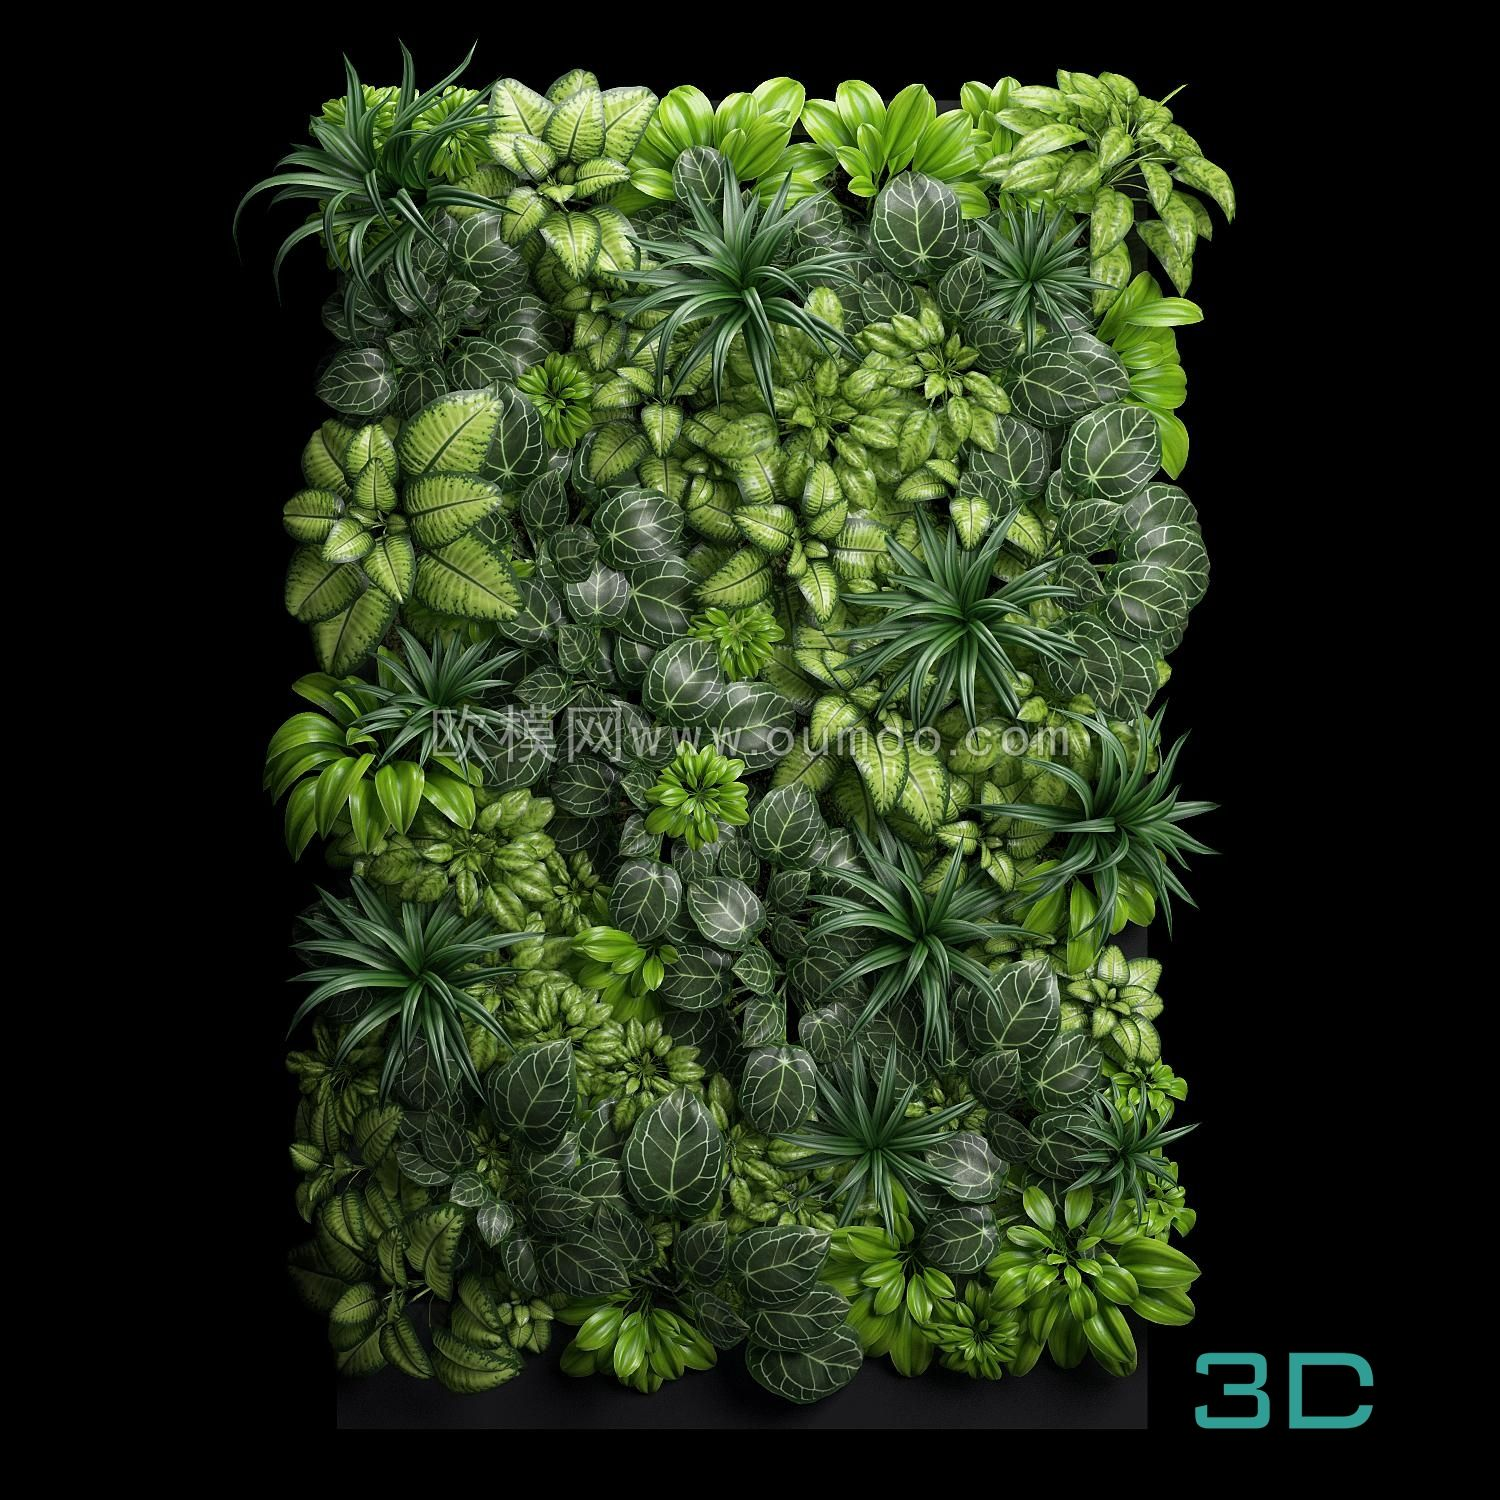 259 Plant 3dsmax Model Free Download Plants Plant Wall